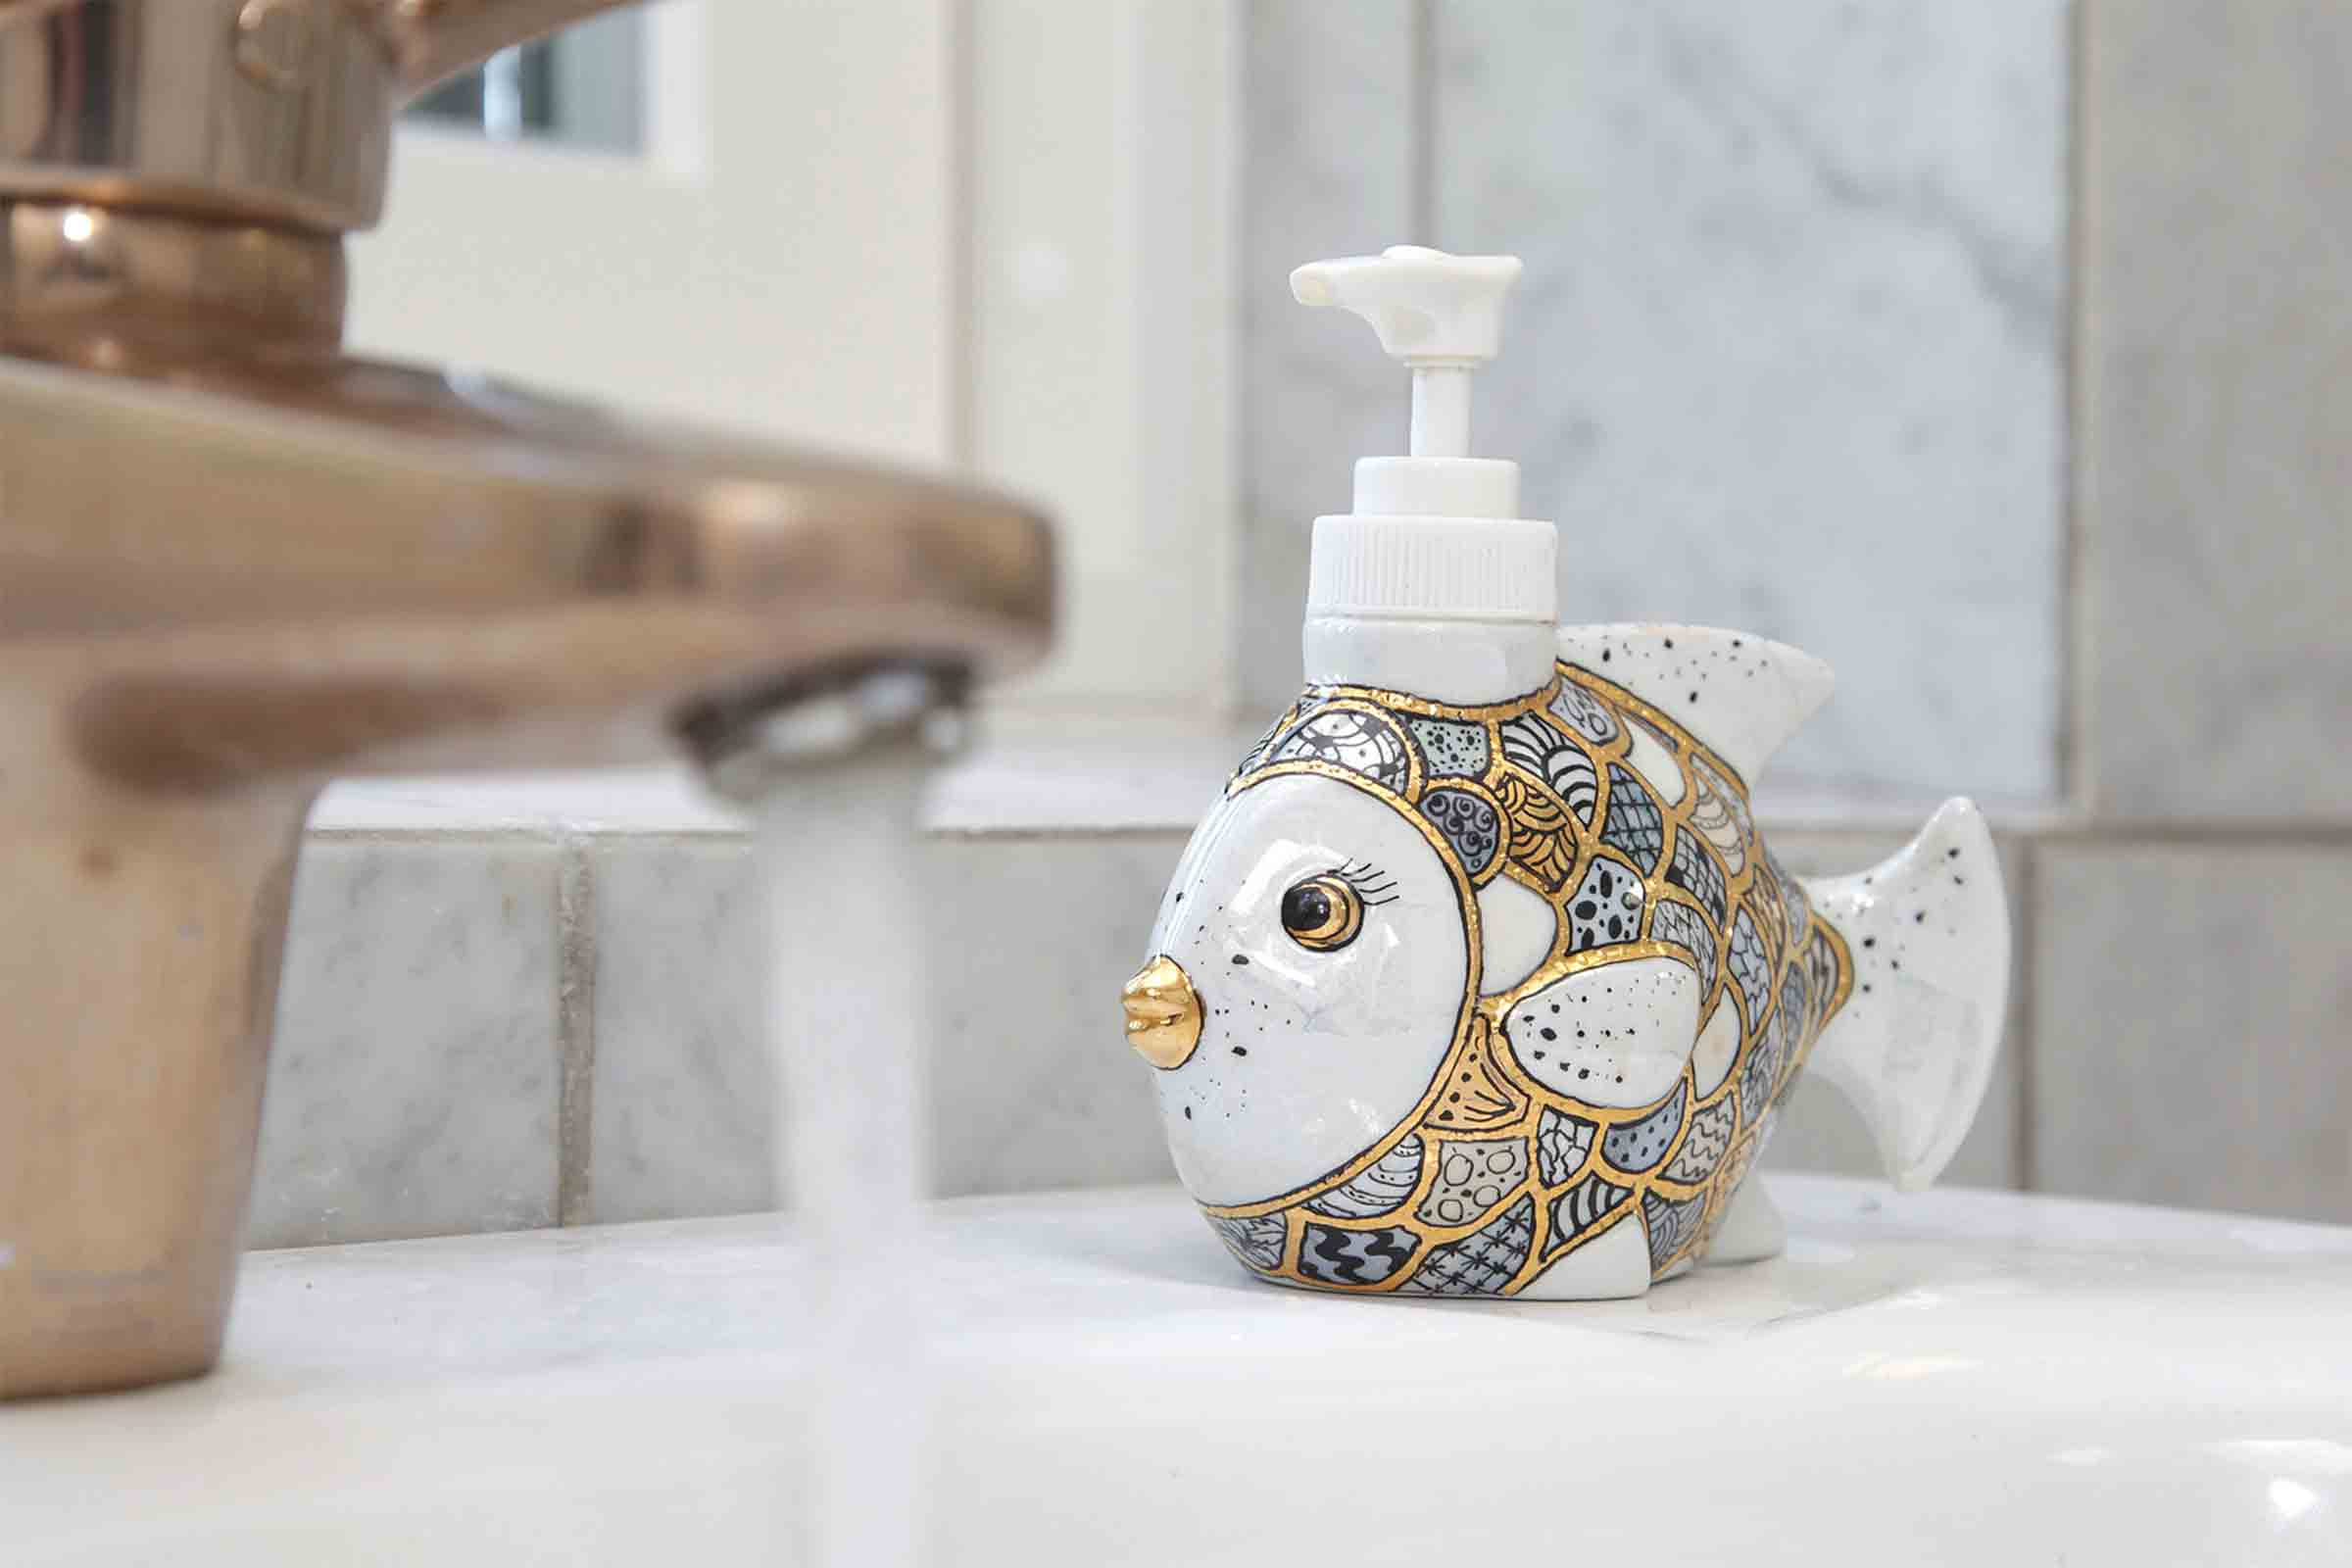 Running tap water and fish soap dispenser